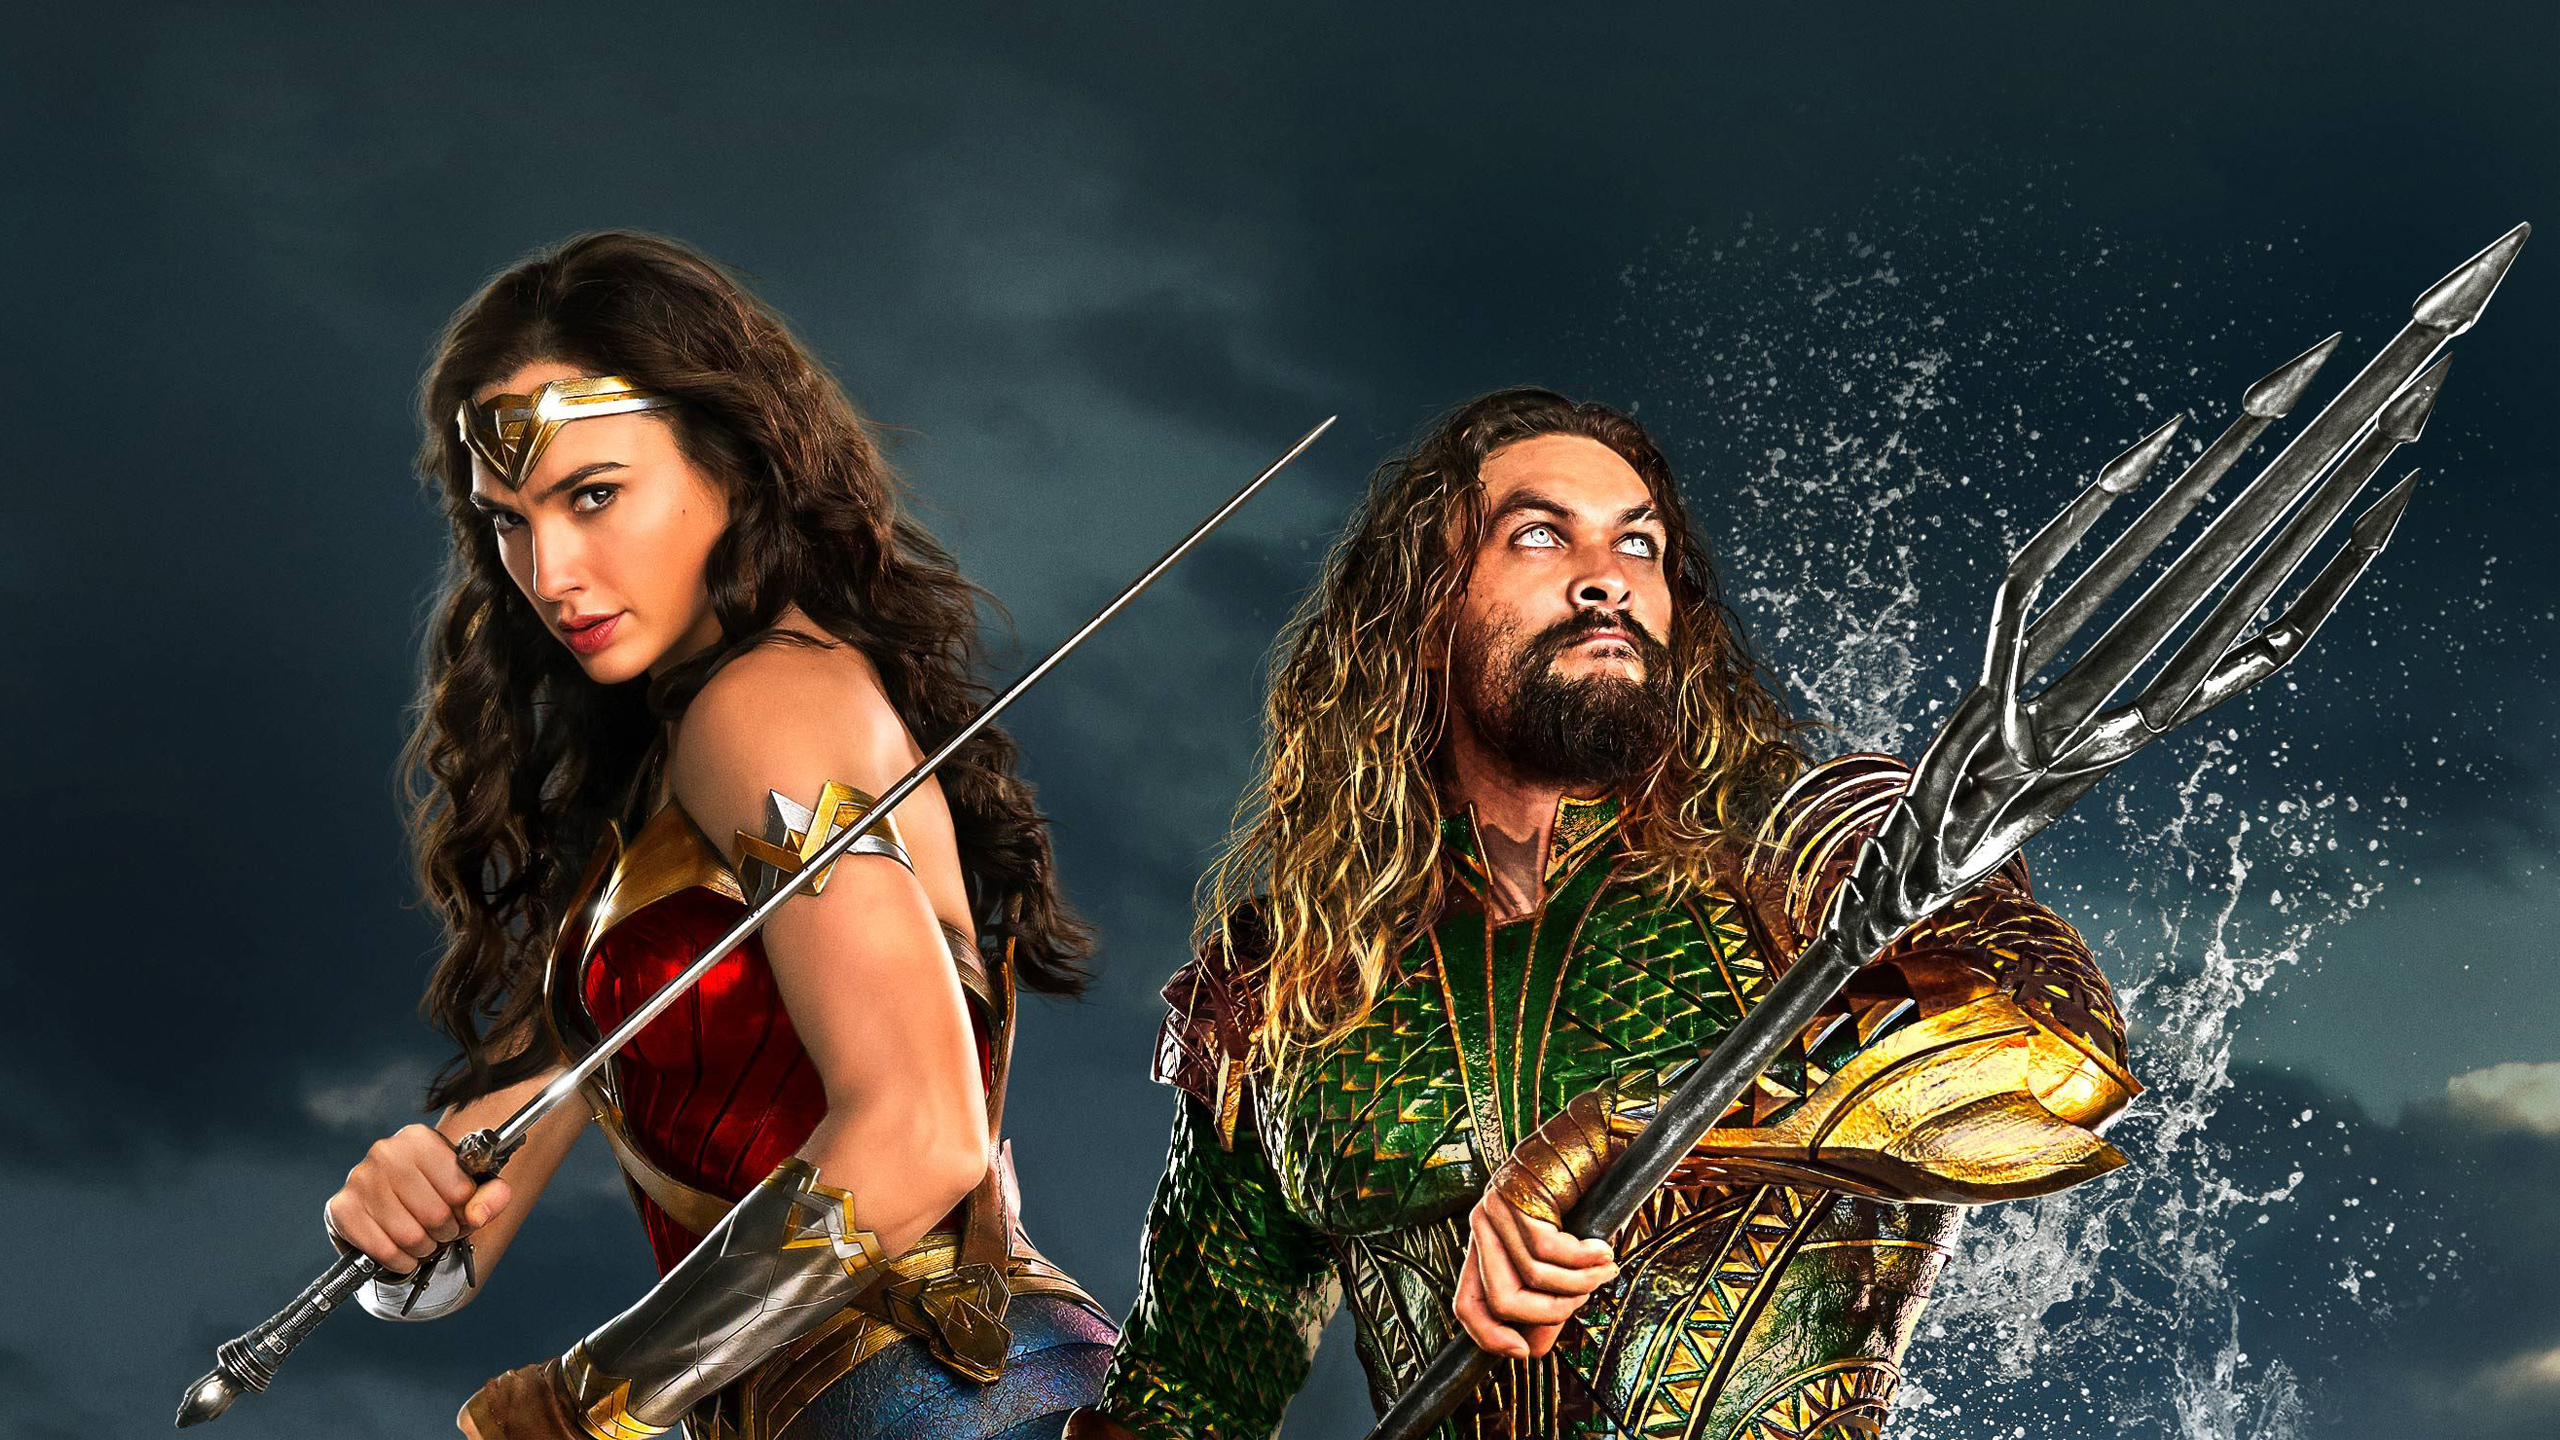 Wonder Woman Aquaman in Justice League Wallpapers